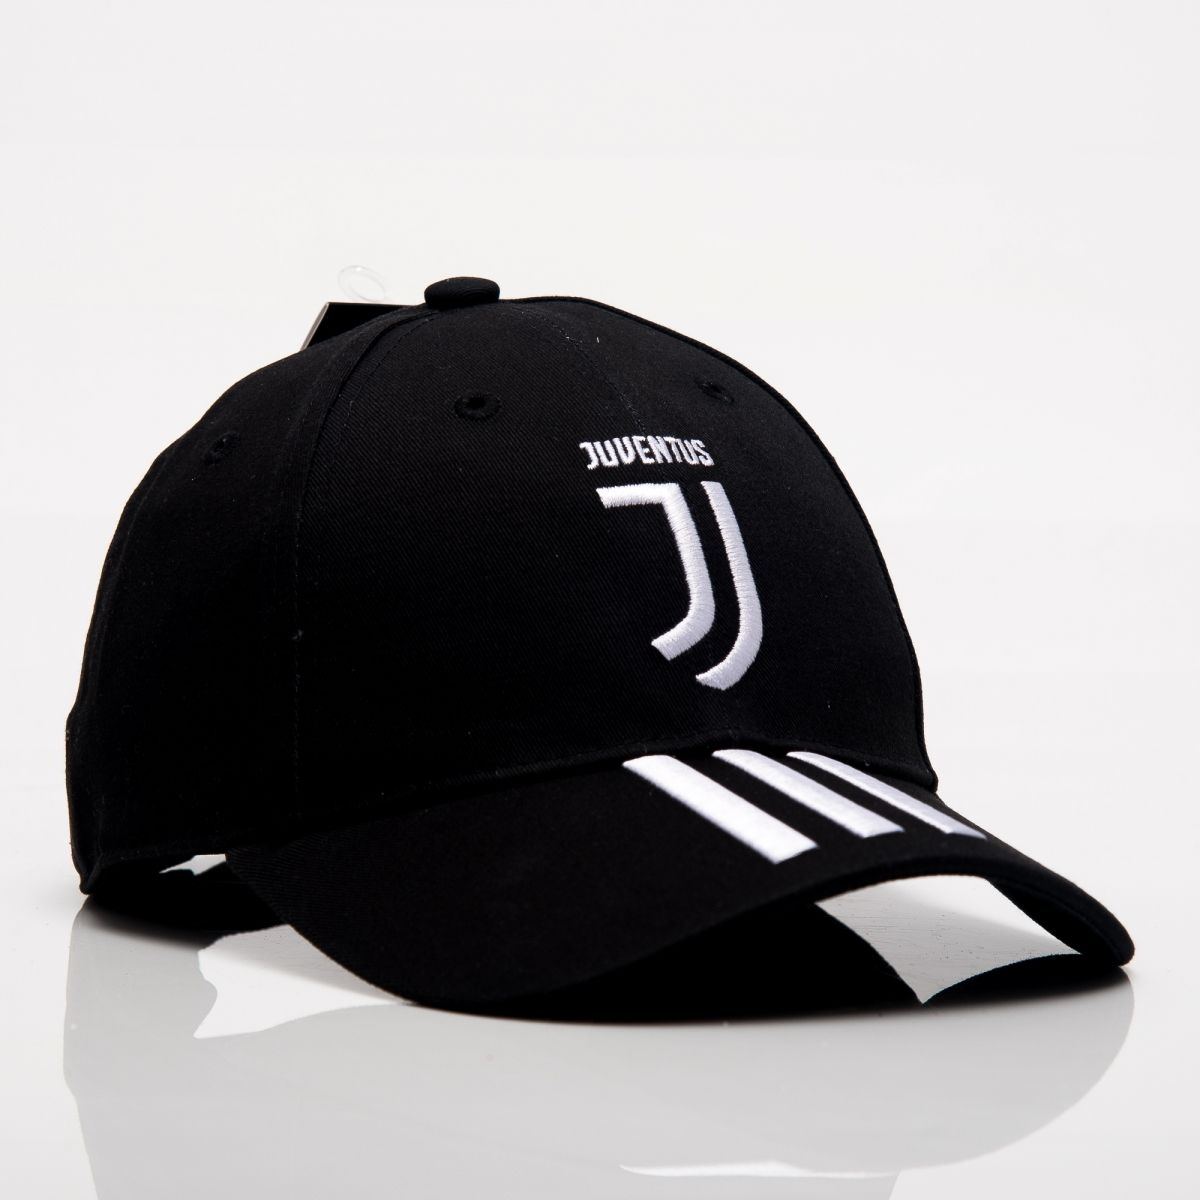 a09d749483584 Type Caps adidas FC Juventus 2018/19 3 Stripes Hat